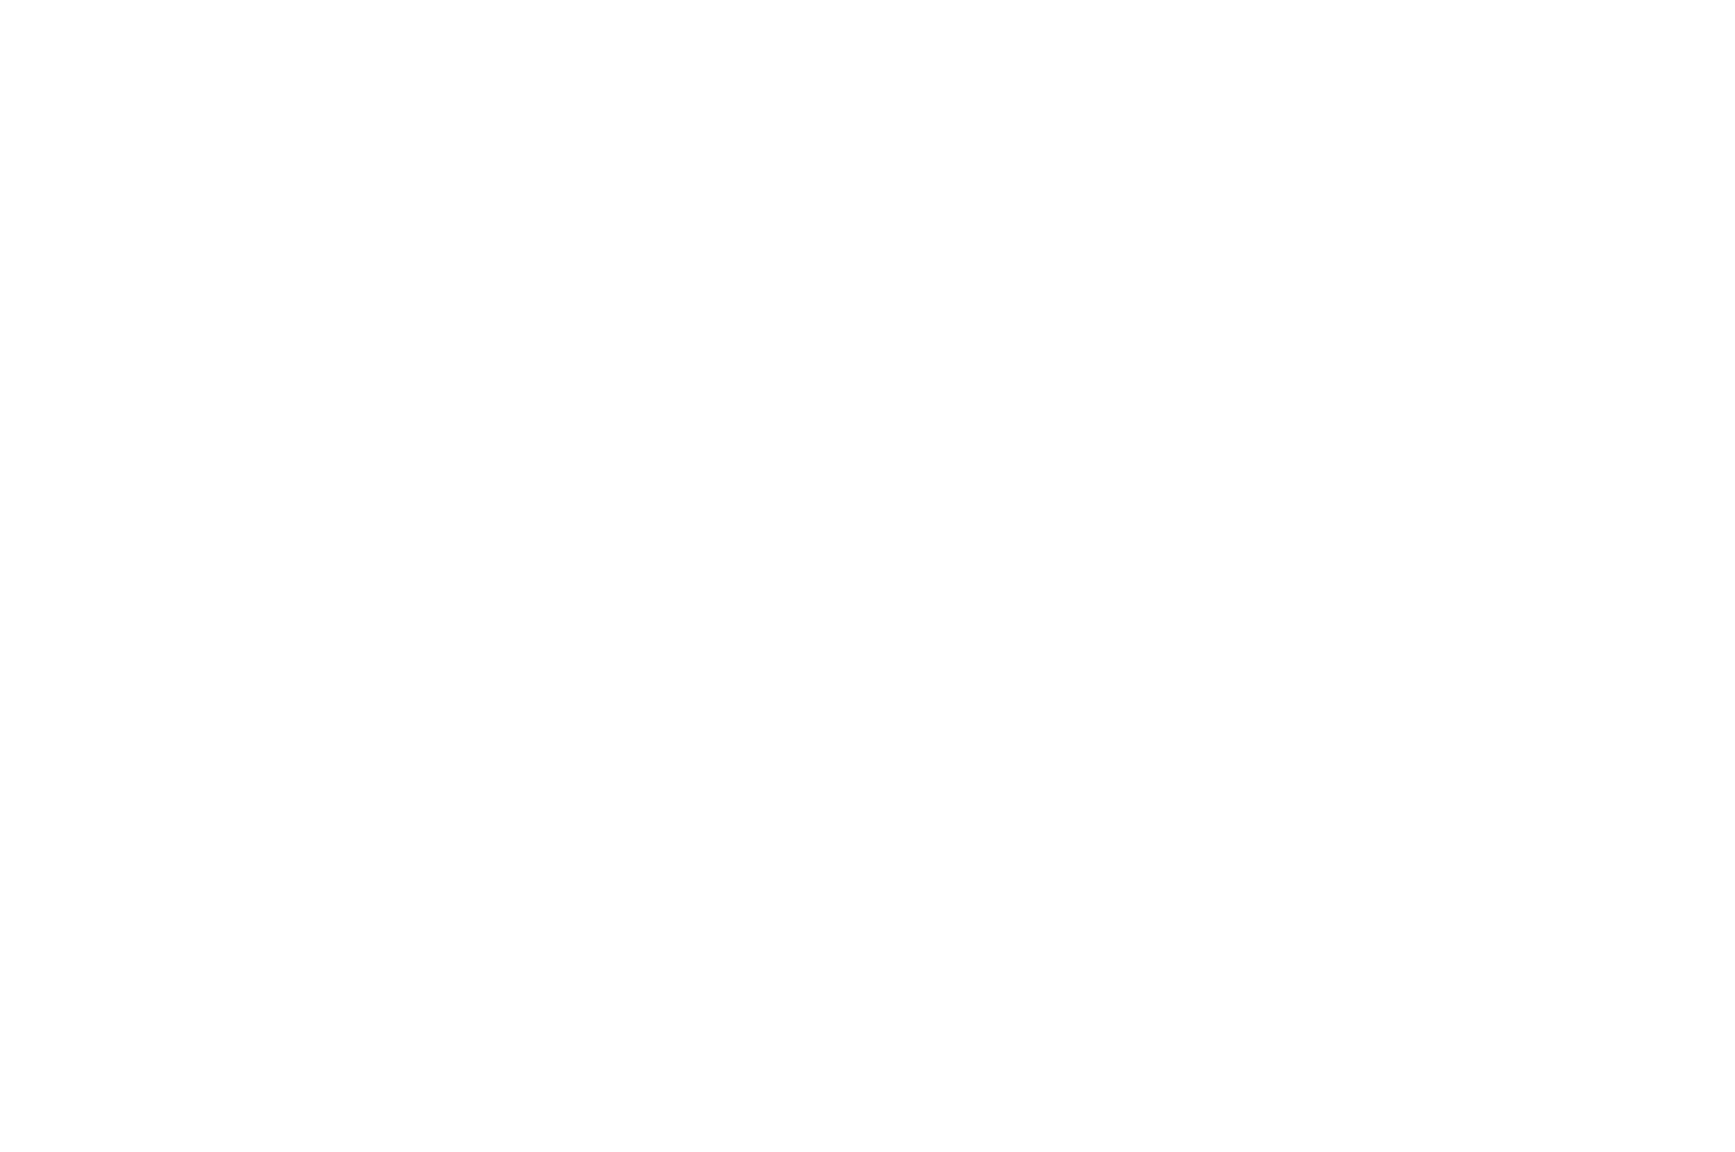 WINNER - OUT OF THE CAN FILM FESTIVAL - 2017